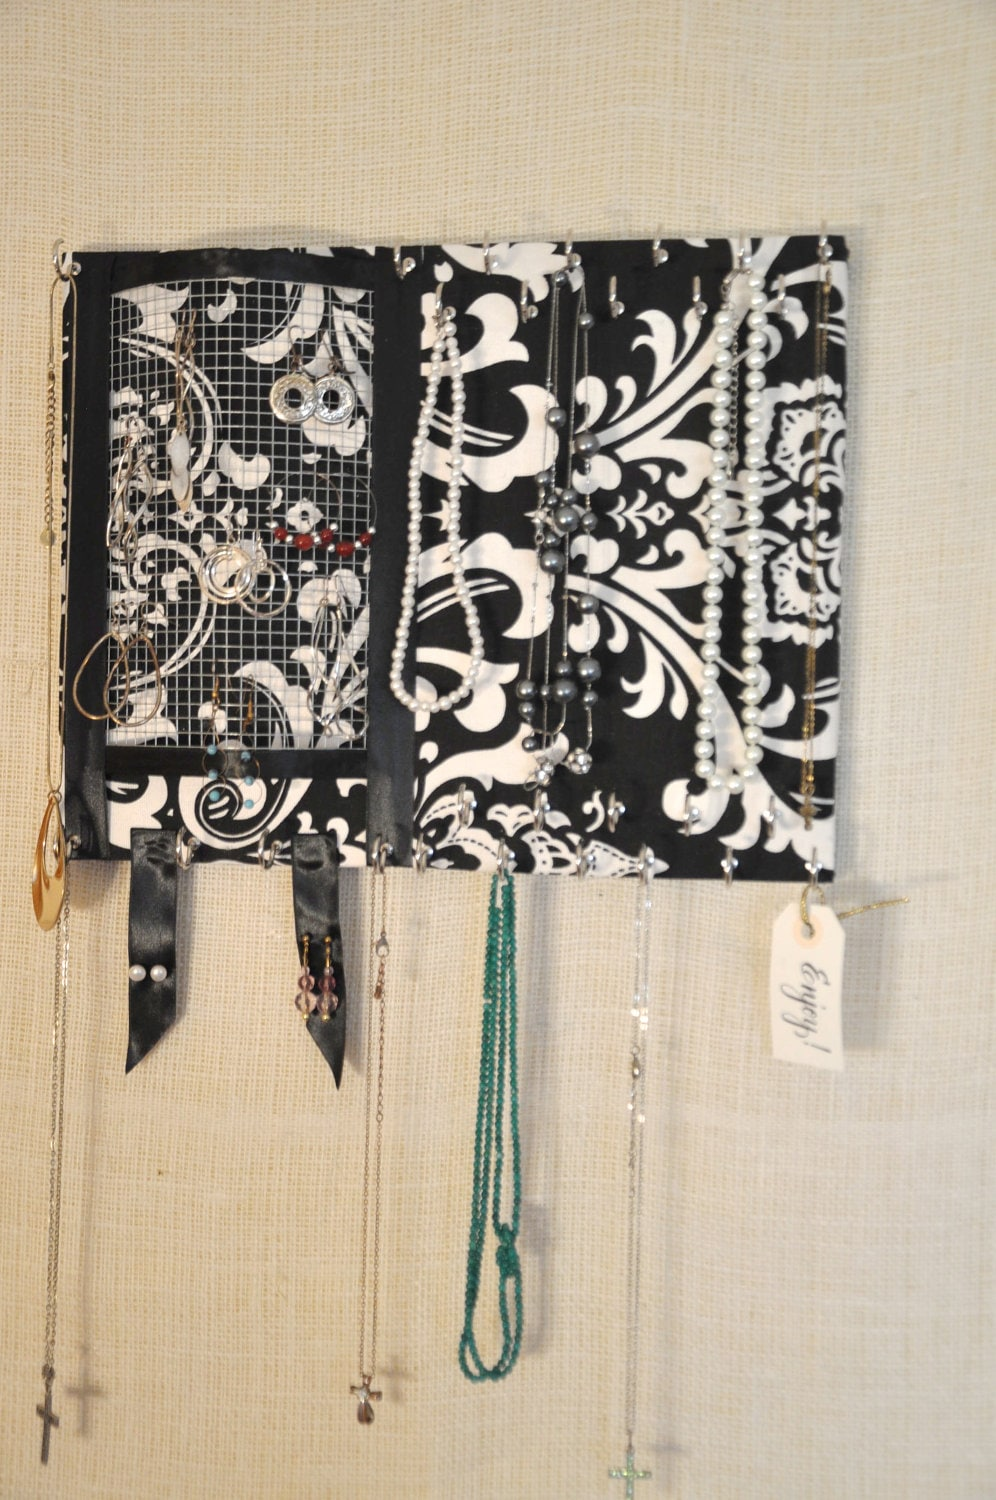 JEWELRY ORGANIZER- Medium - Ultimate Black and White DAMASK -27 Large Hooks- 11x14 inches- Organize your Jewelry